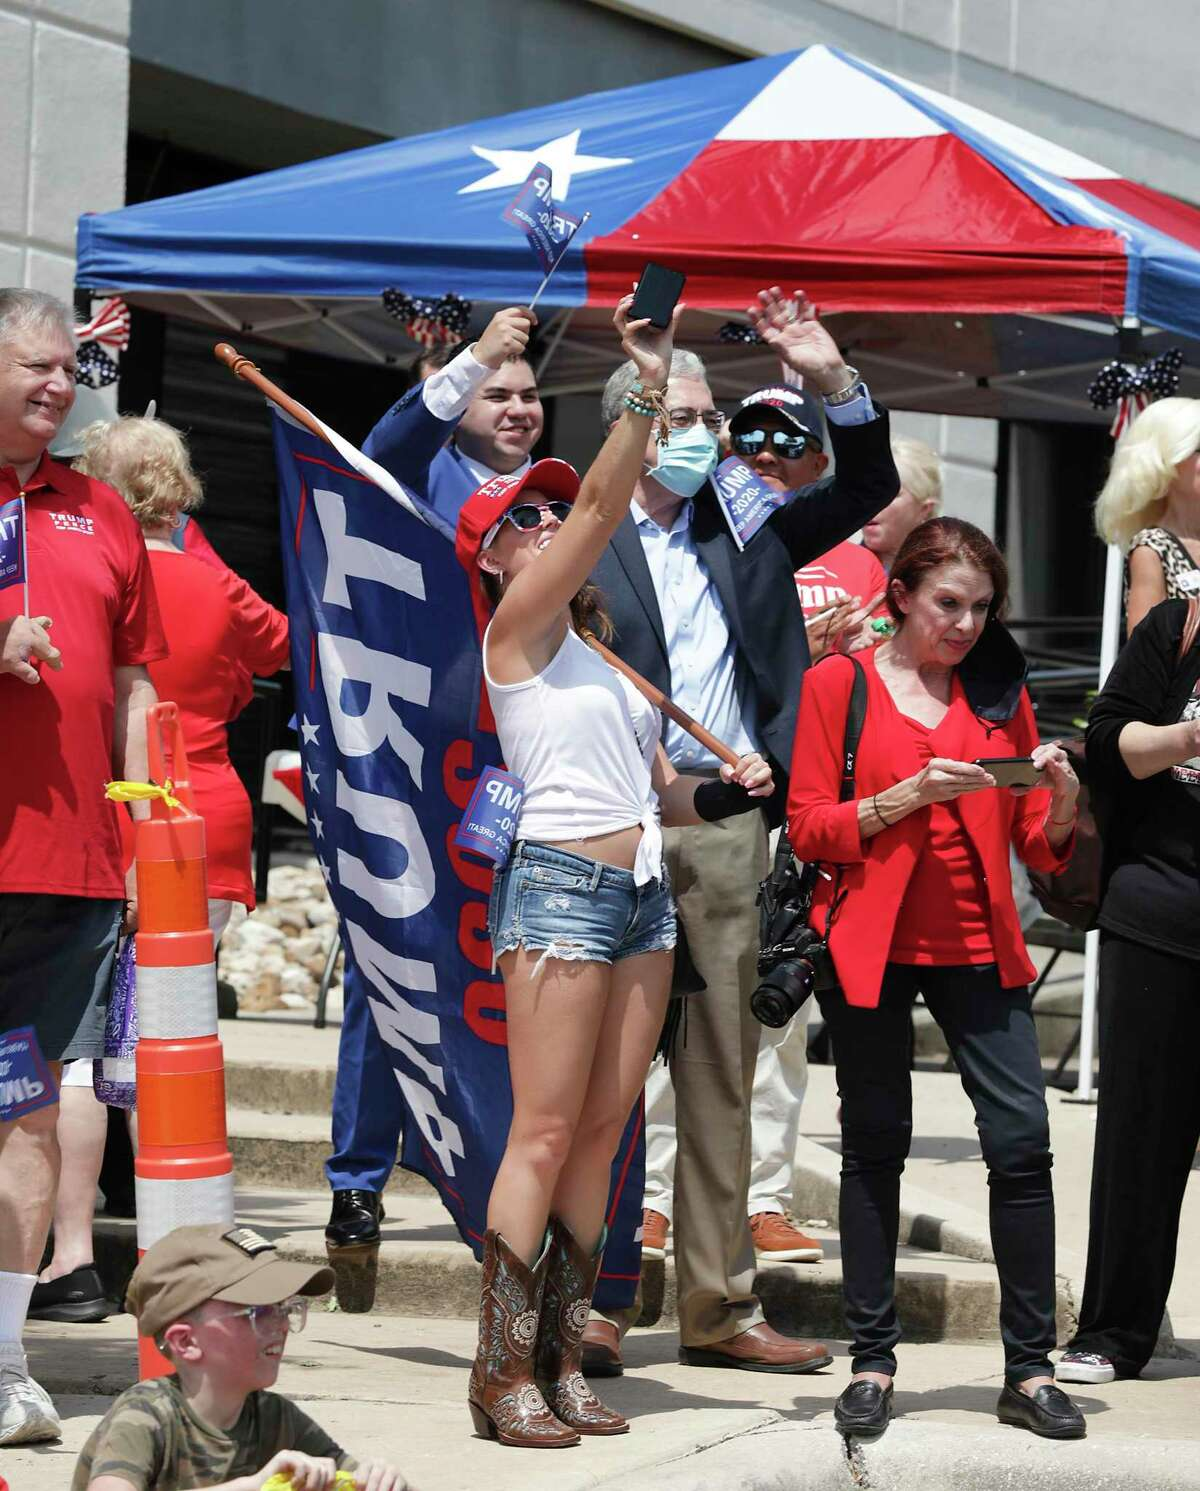 Trump supporters including Alex Ivko, center, greet his campaign bus at a stop in north San Antonio. Lt. Gov. Dan Patrick, former Trump campaign manager Brad Parscale and others are on the bus tour along Interstate 35.